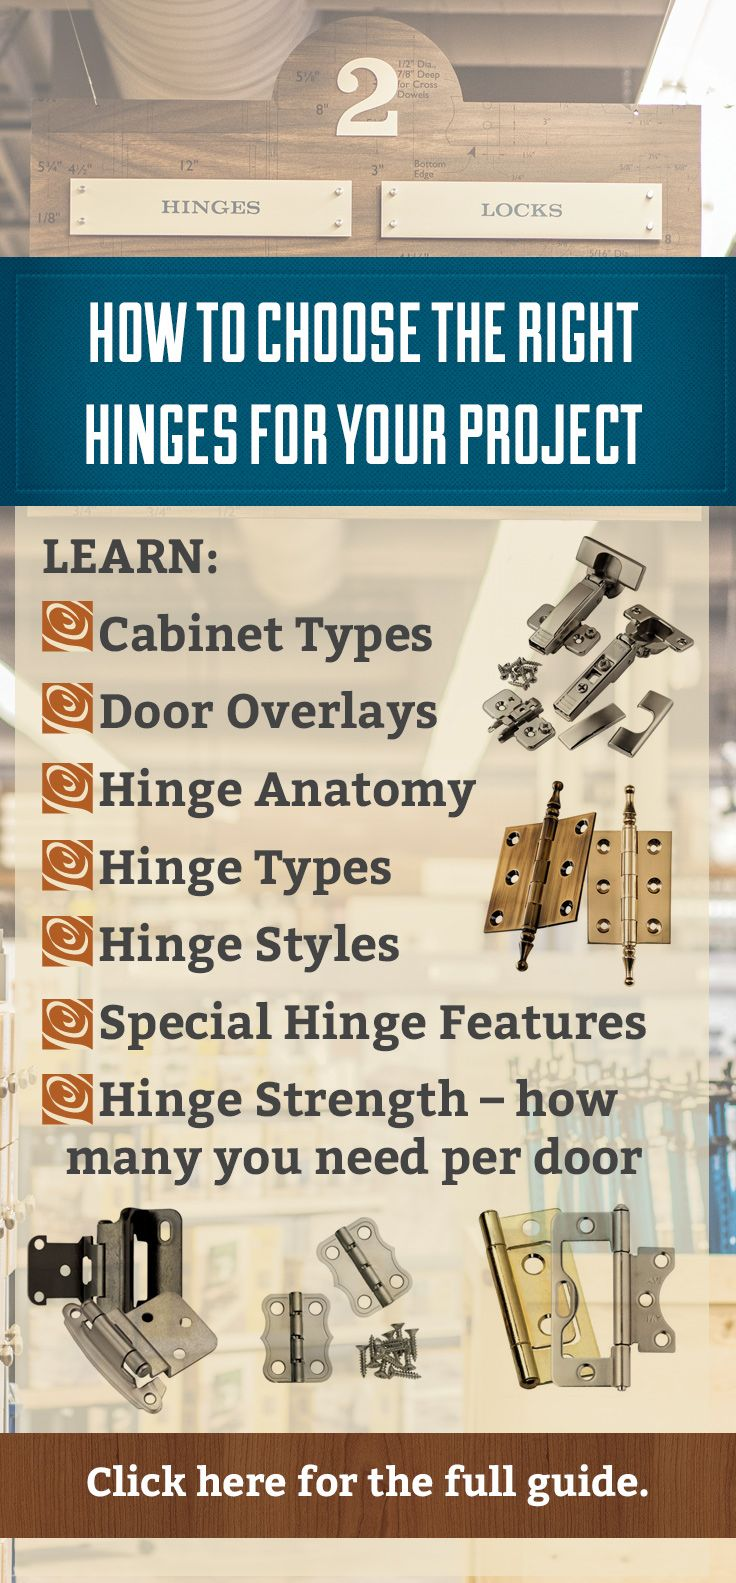 How To Choose The Style Of The: Choosing The Right Cabinet Hinge For Your Project